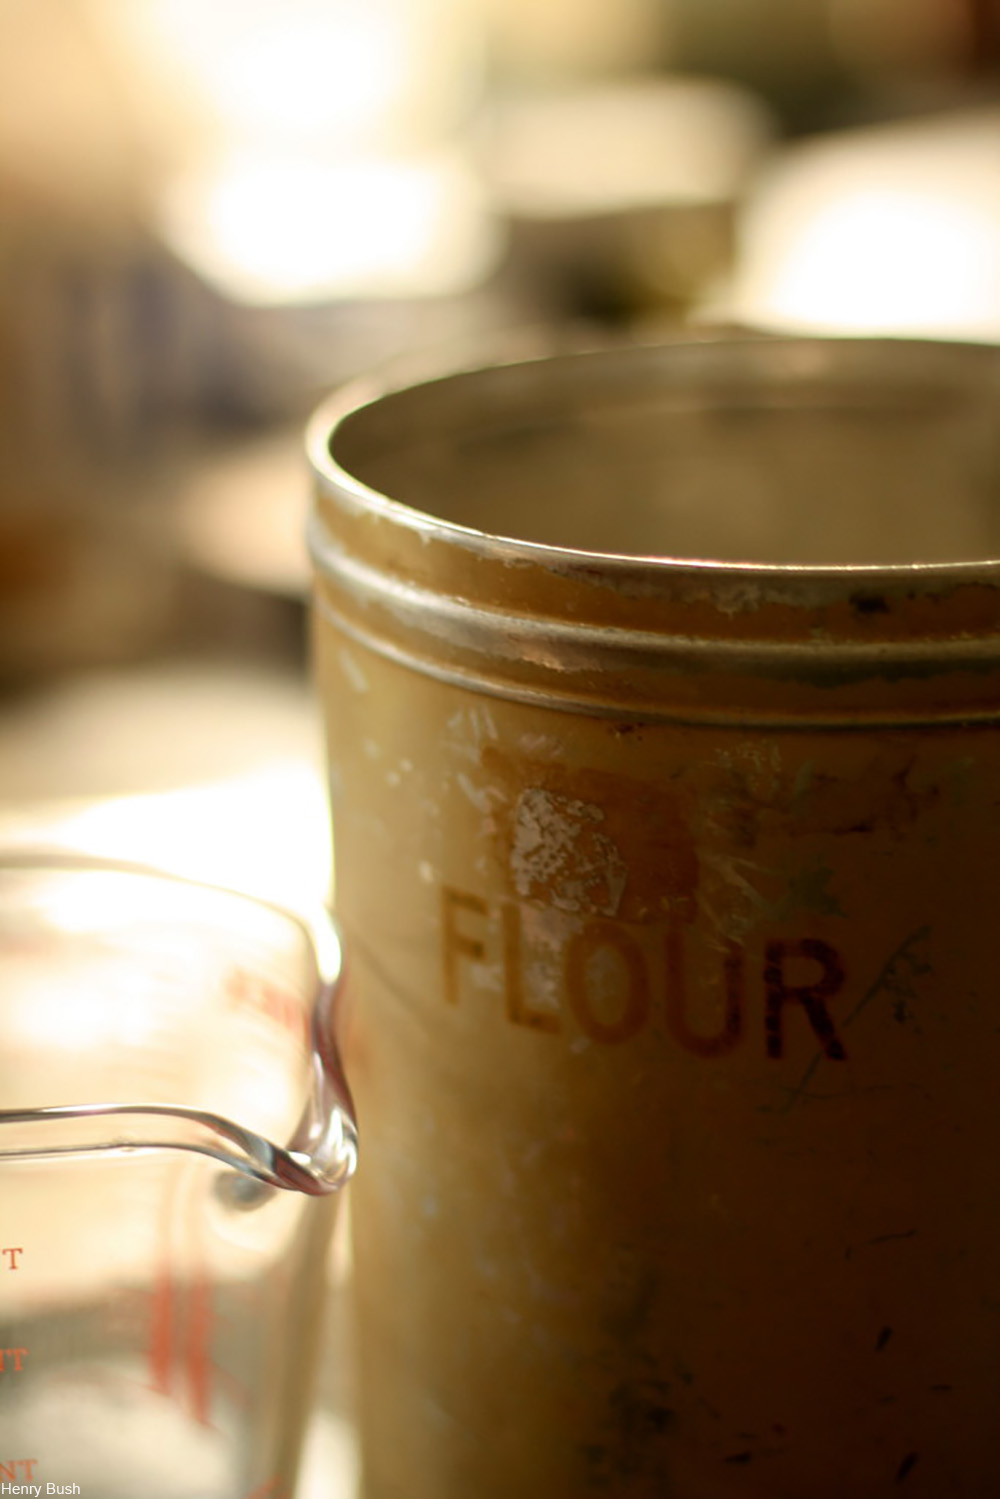 old fashioned flour canister